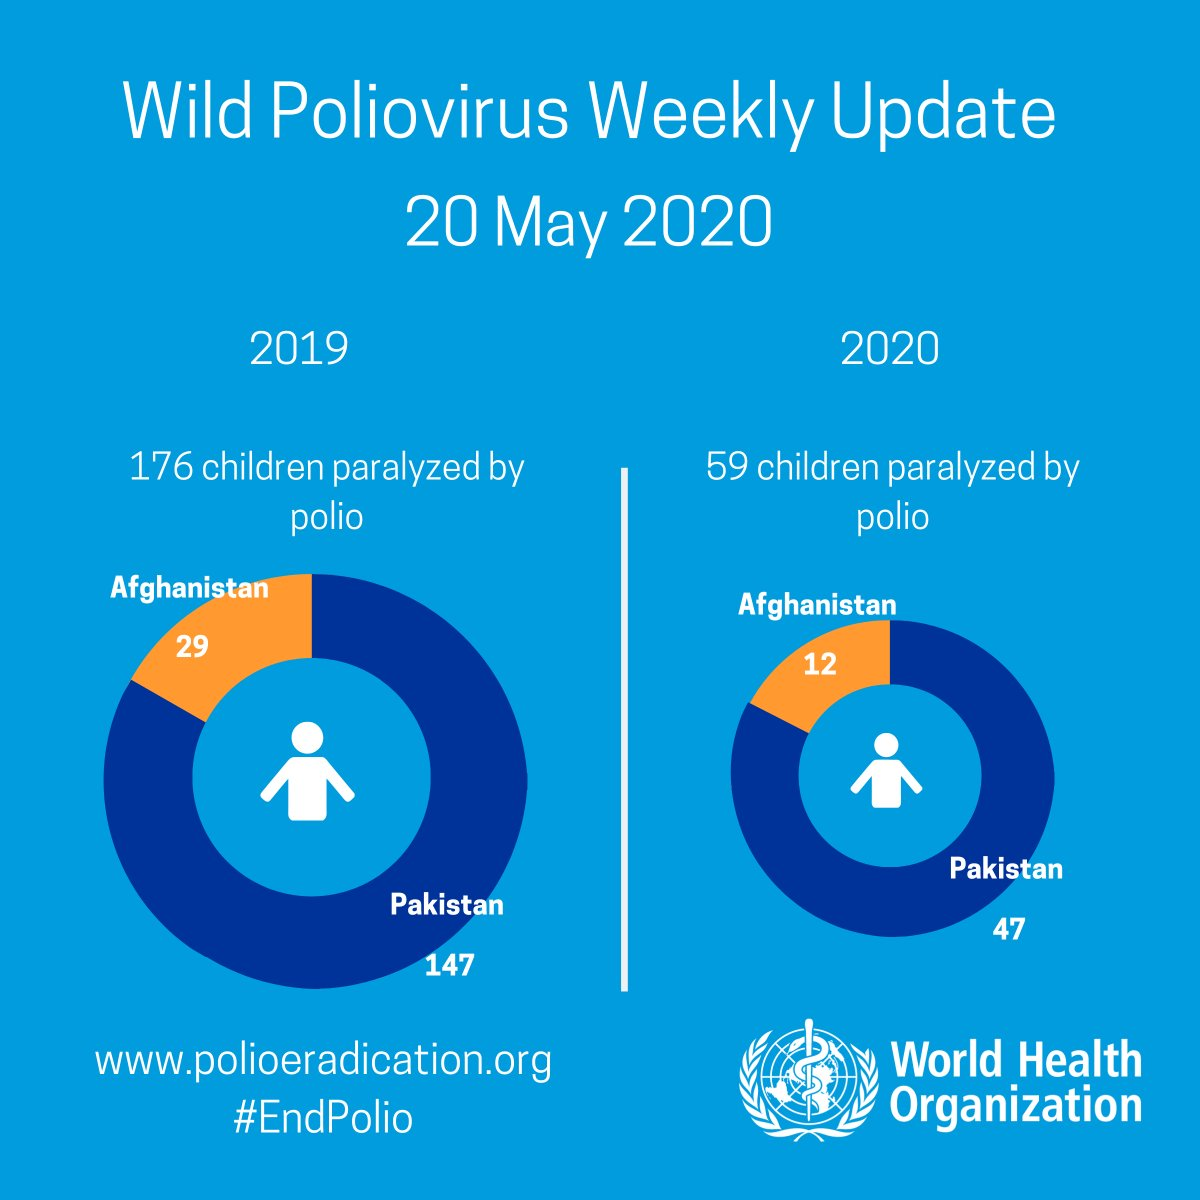 Wild poliovirus weekly case update from @WHO: No new cases. In 2020: #Afghanistan: 12, #Pakistan: 47 In 2019: #Afghanistan: 29, #Pakistan: 147 More: bit.ly/2n9YwWJ